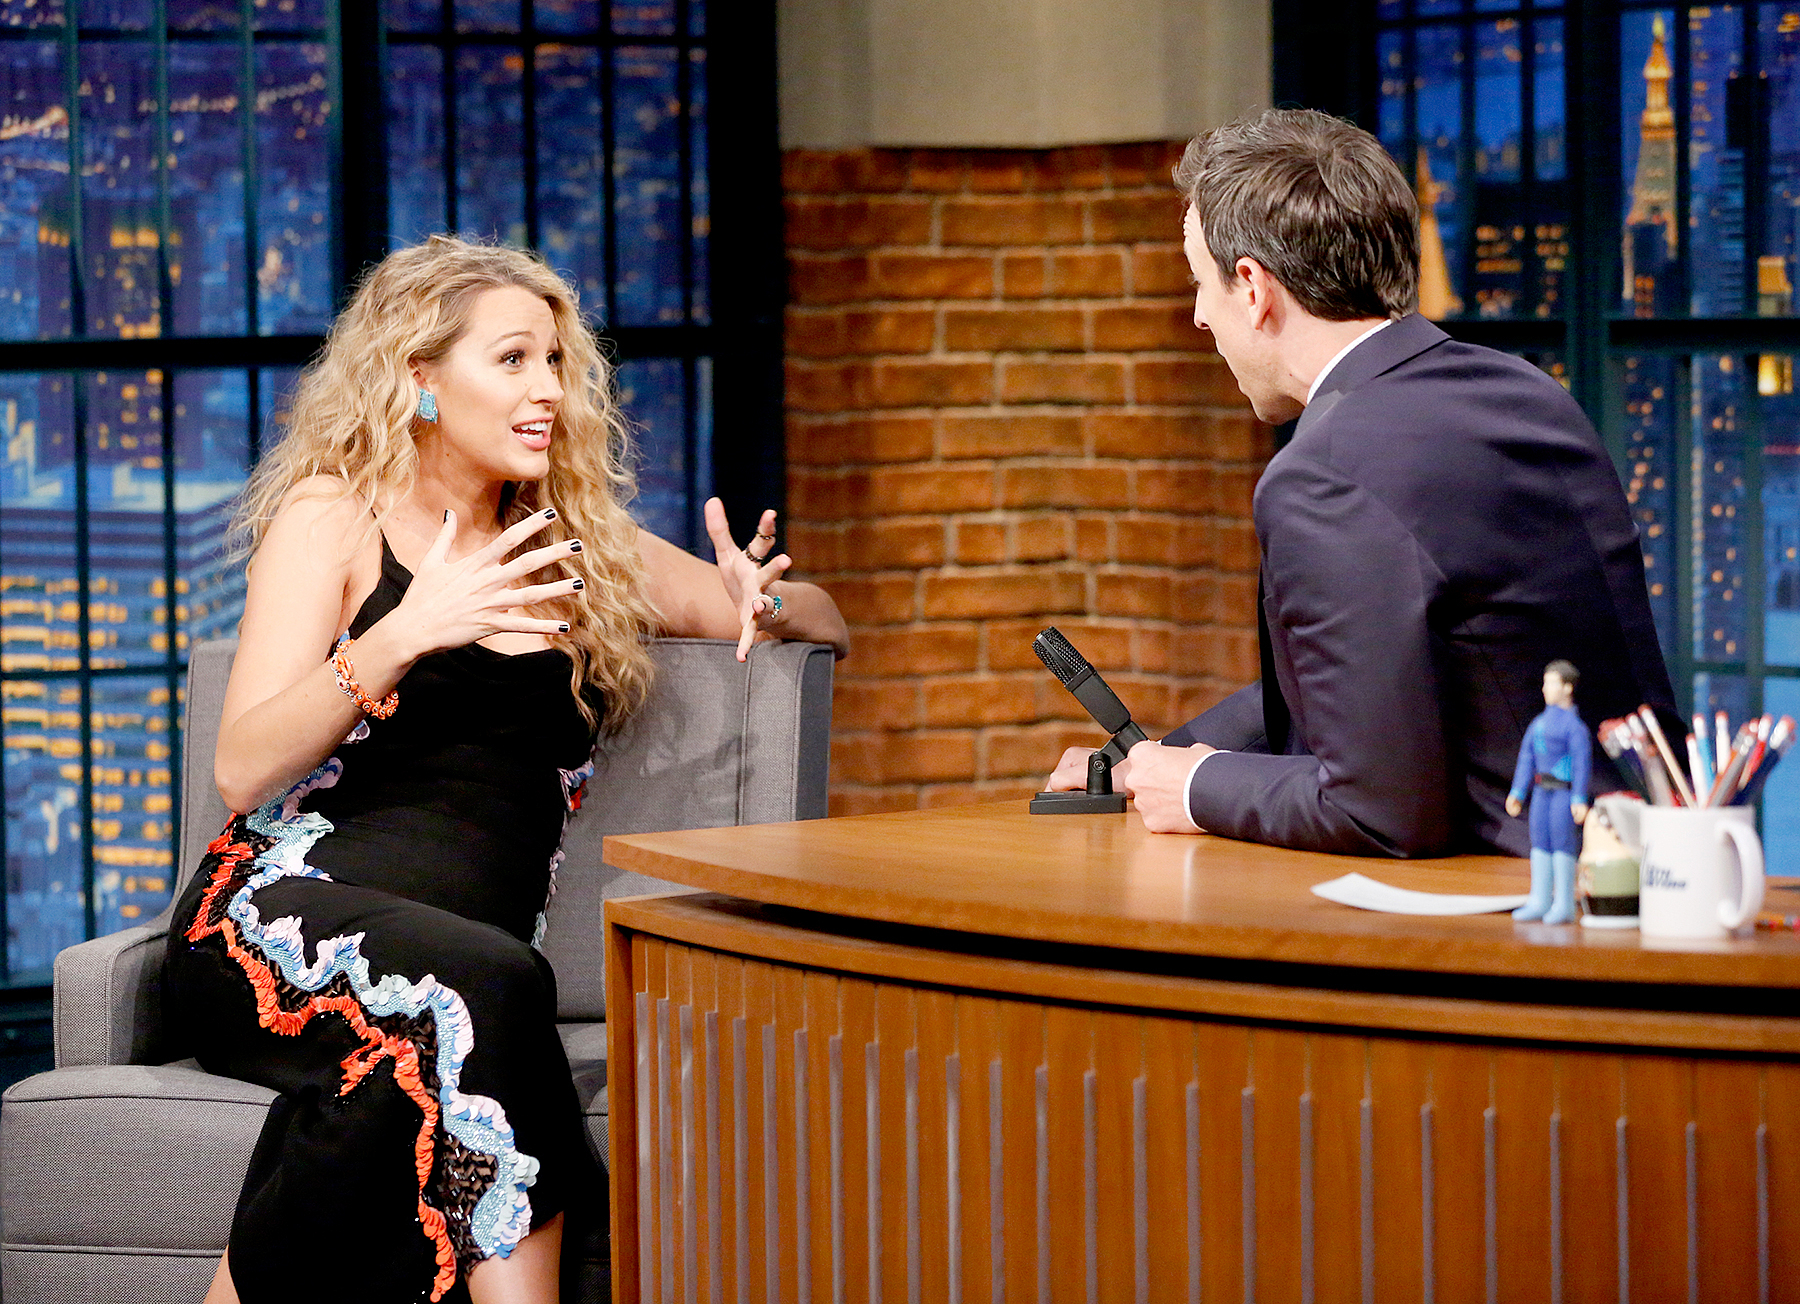 Blake Lively during an interview with host Seth Meyers on June 22, 2016.